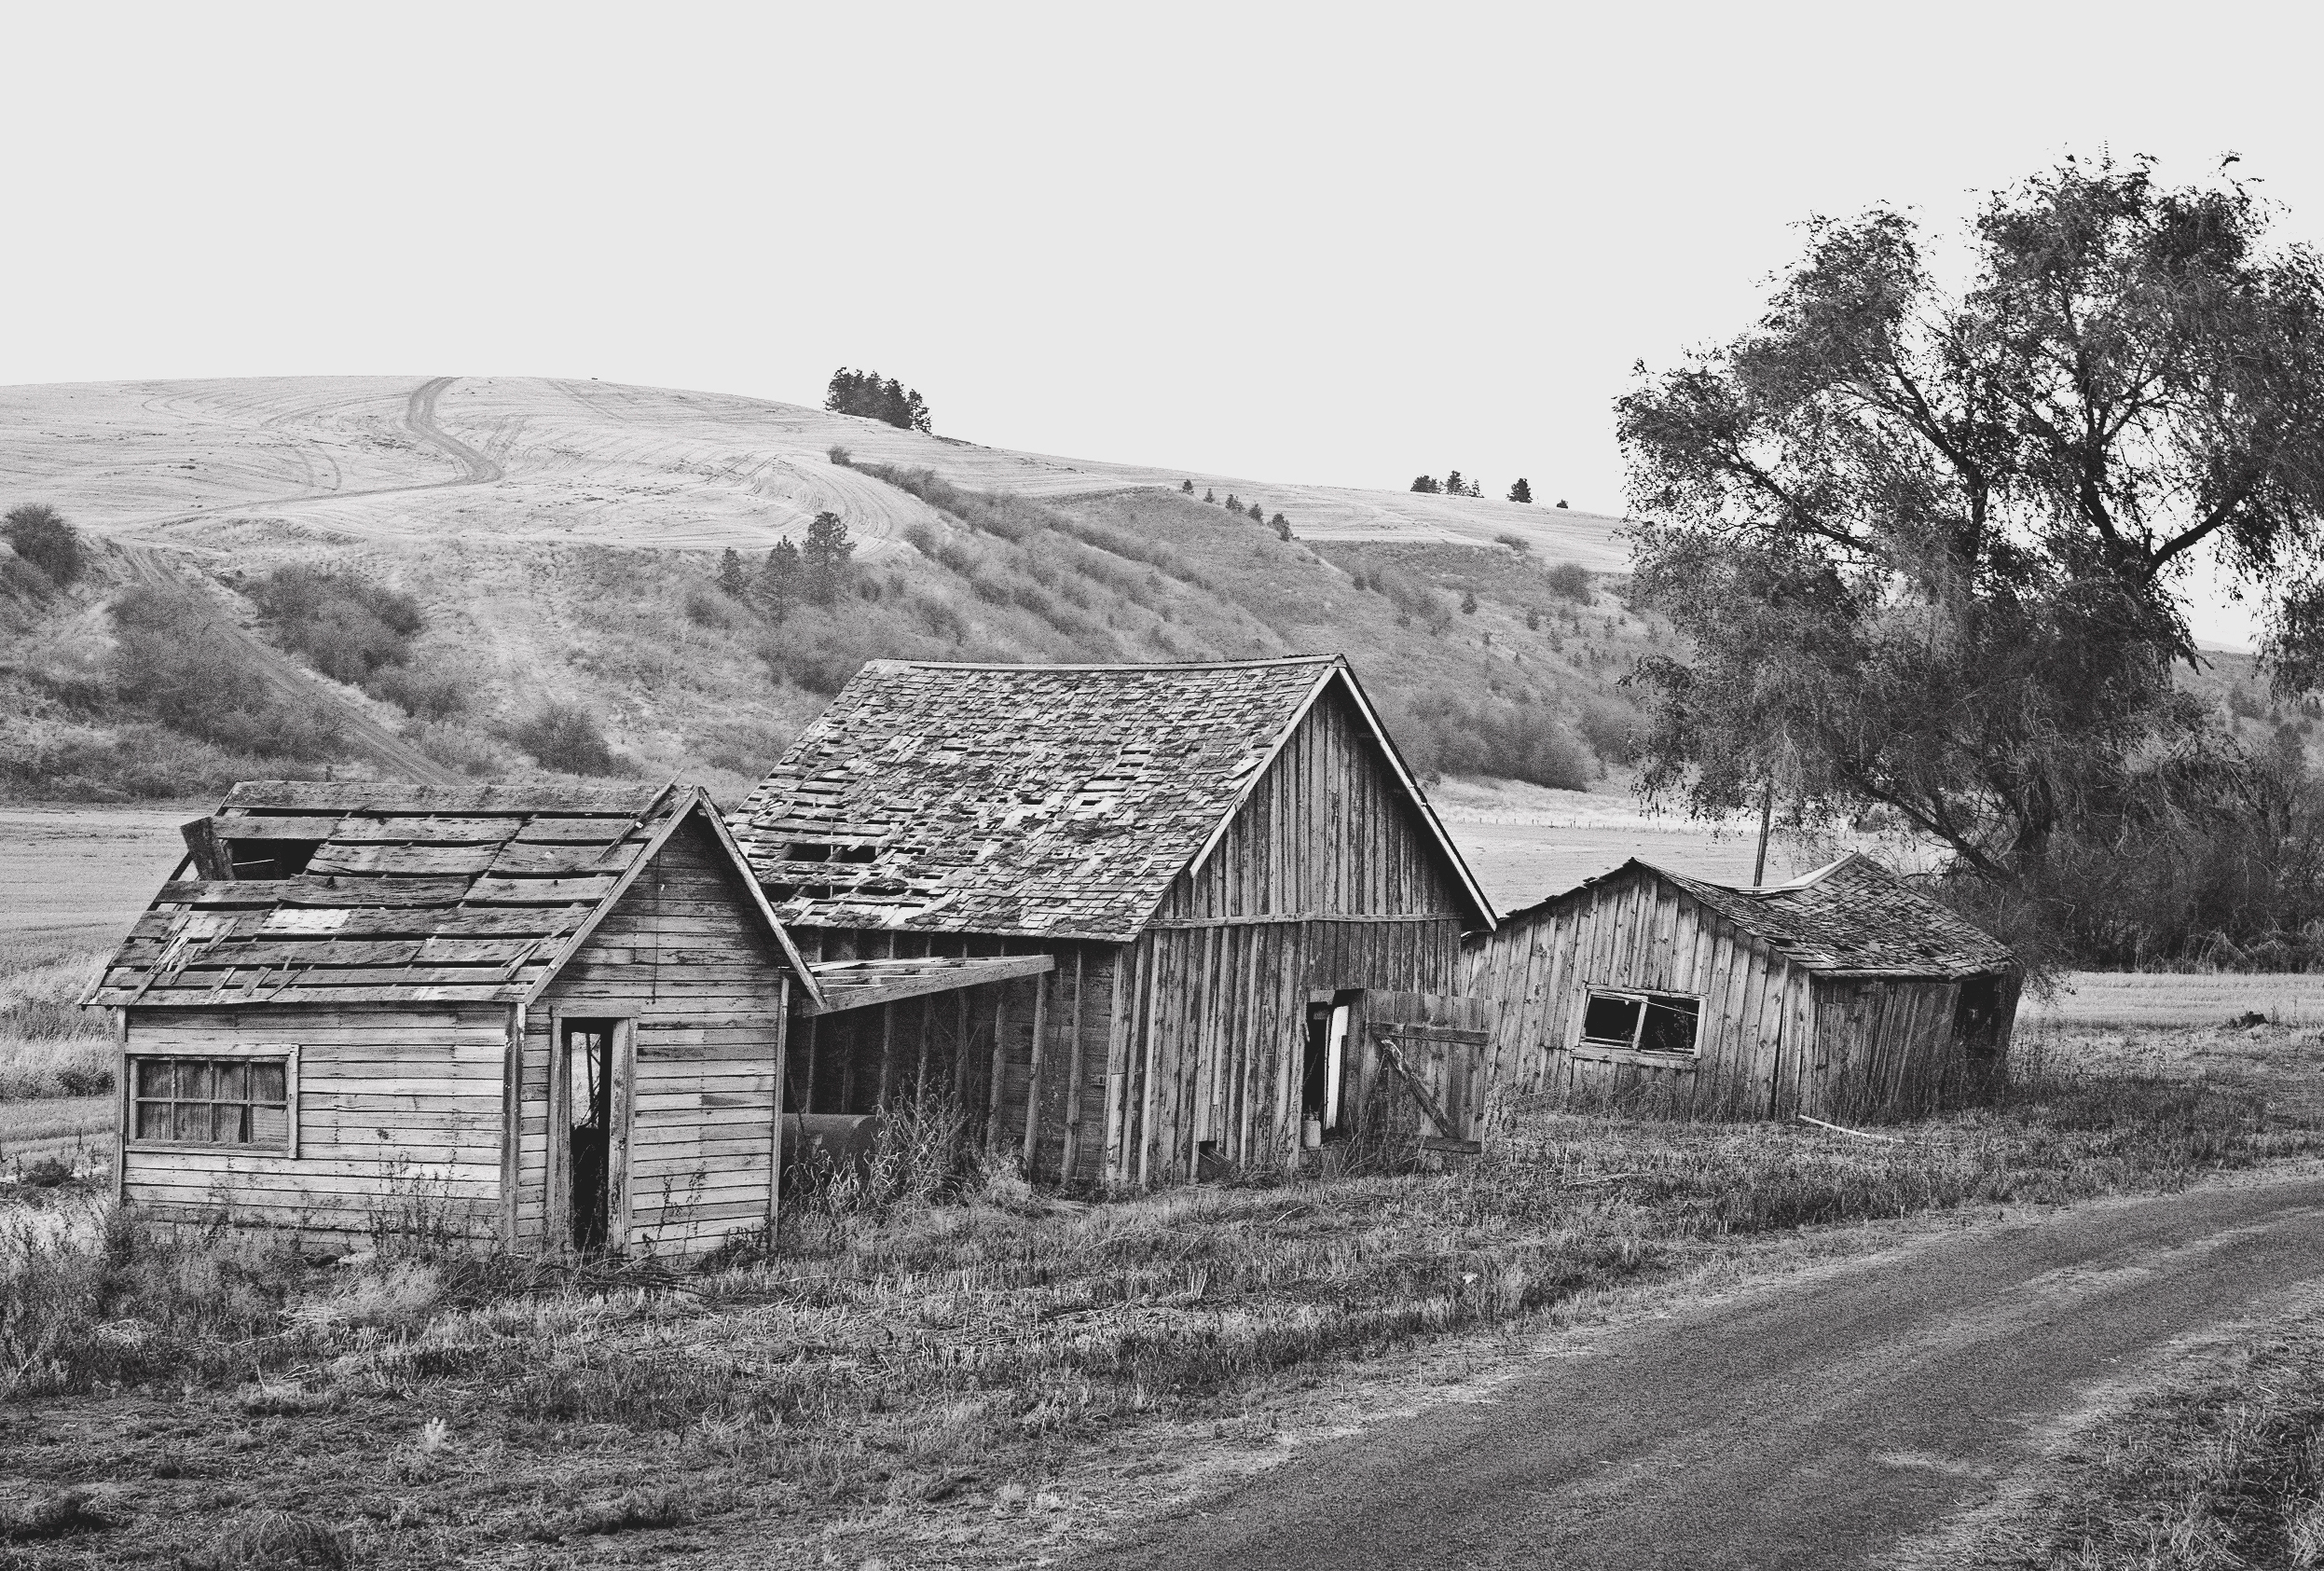 The Farm in the Palouse